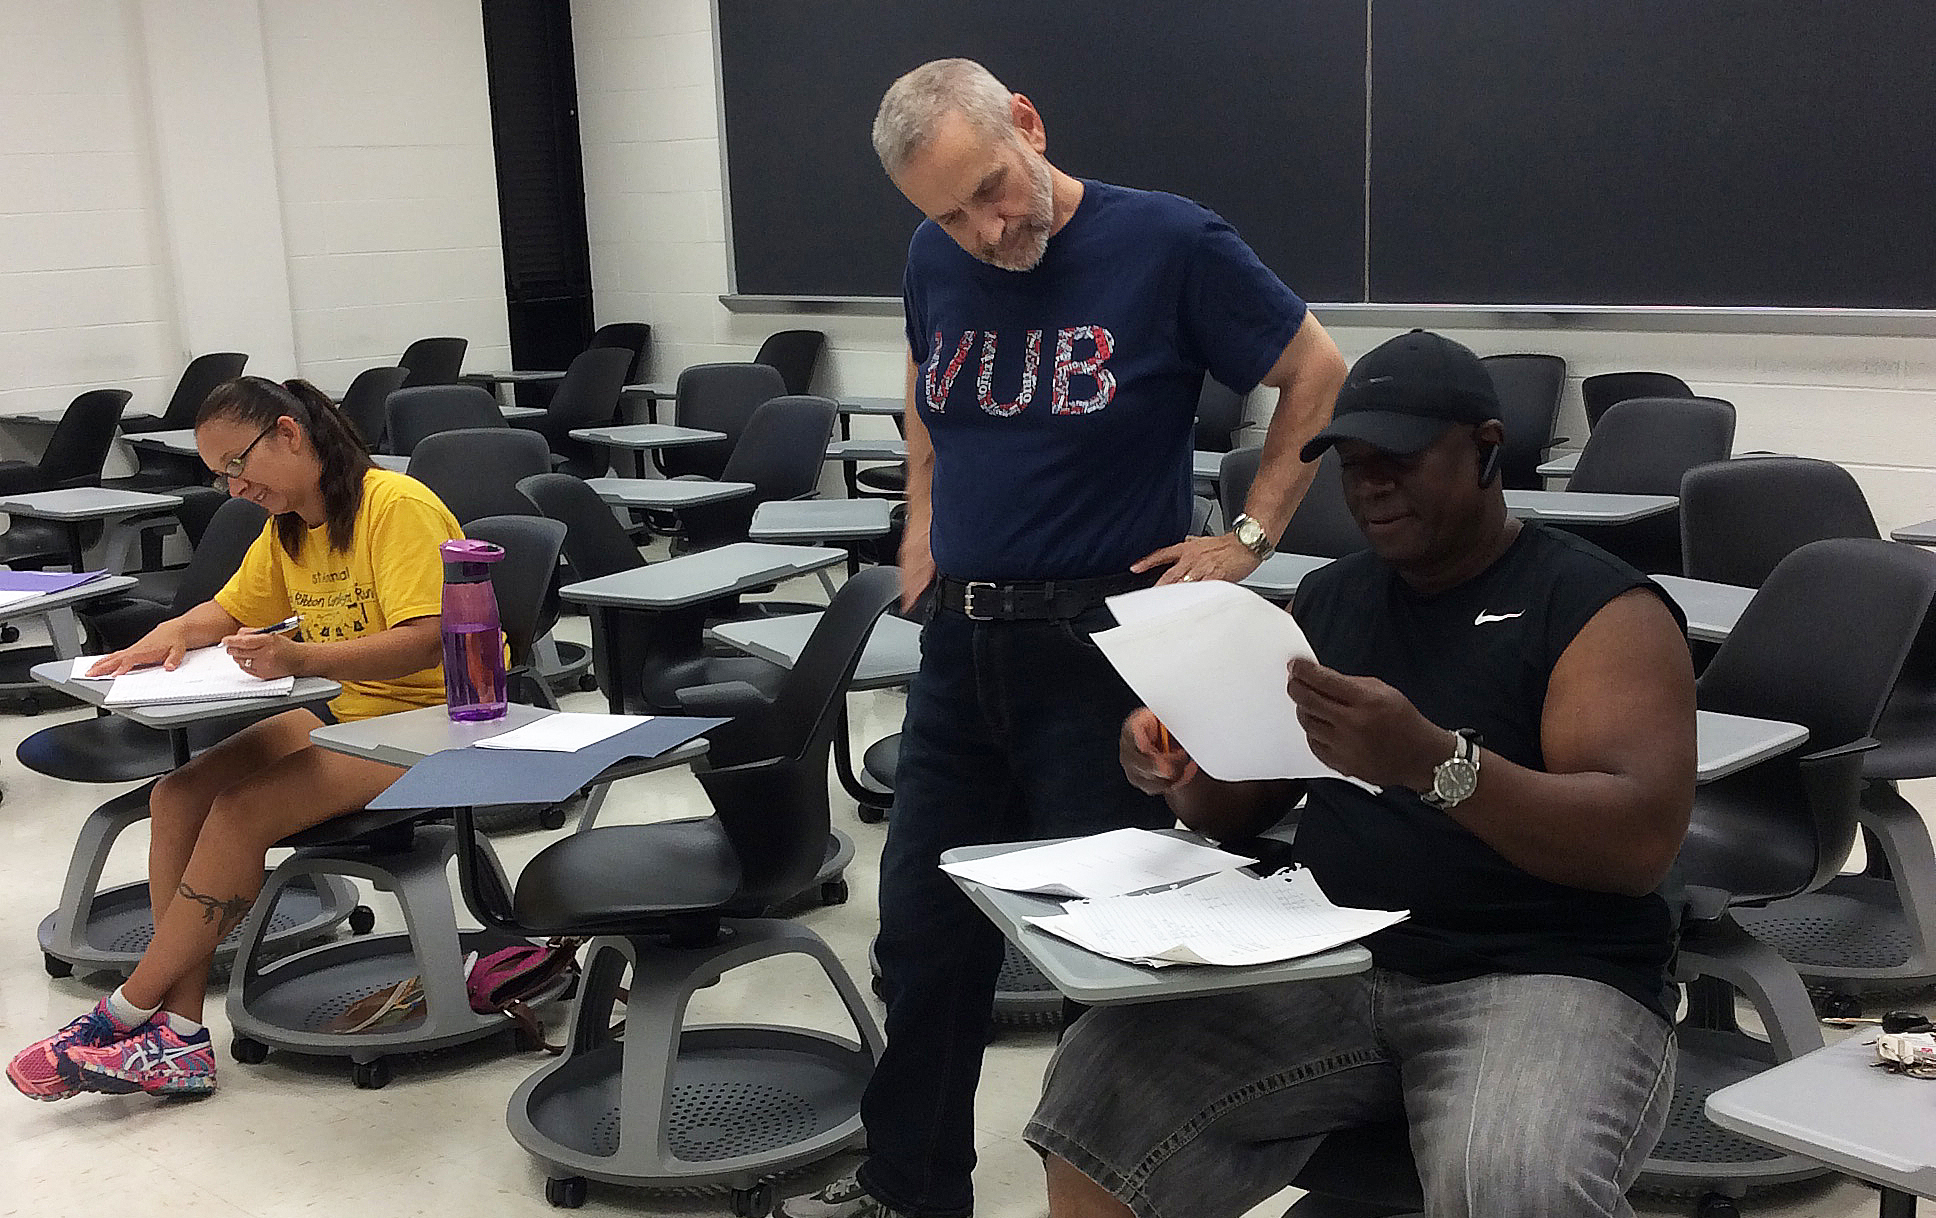 veteran student getting tutored in the classroom